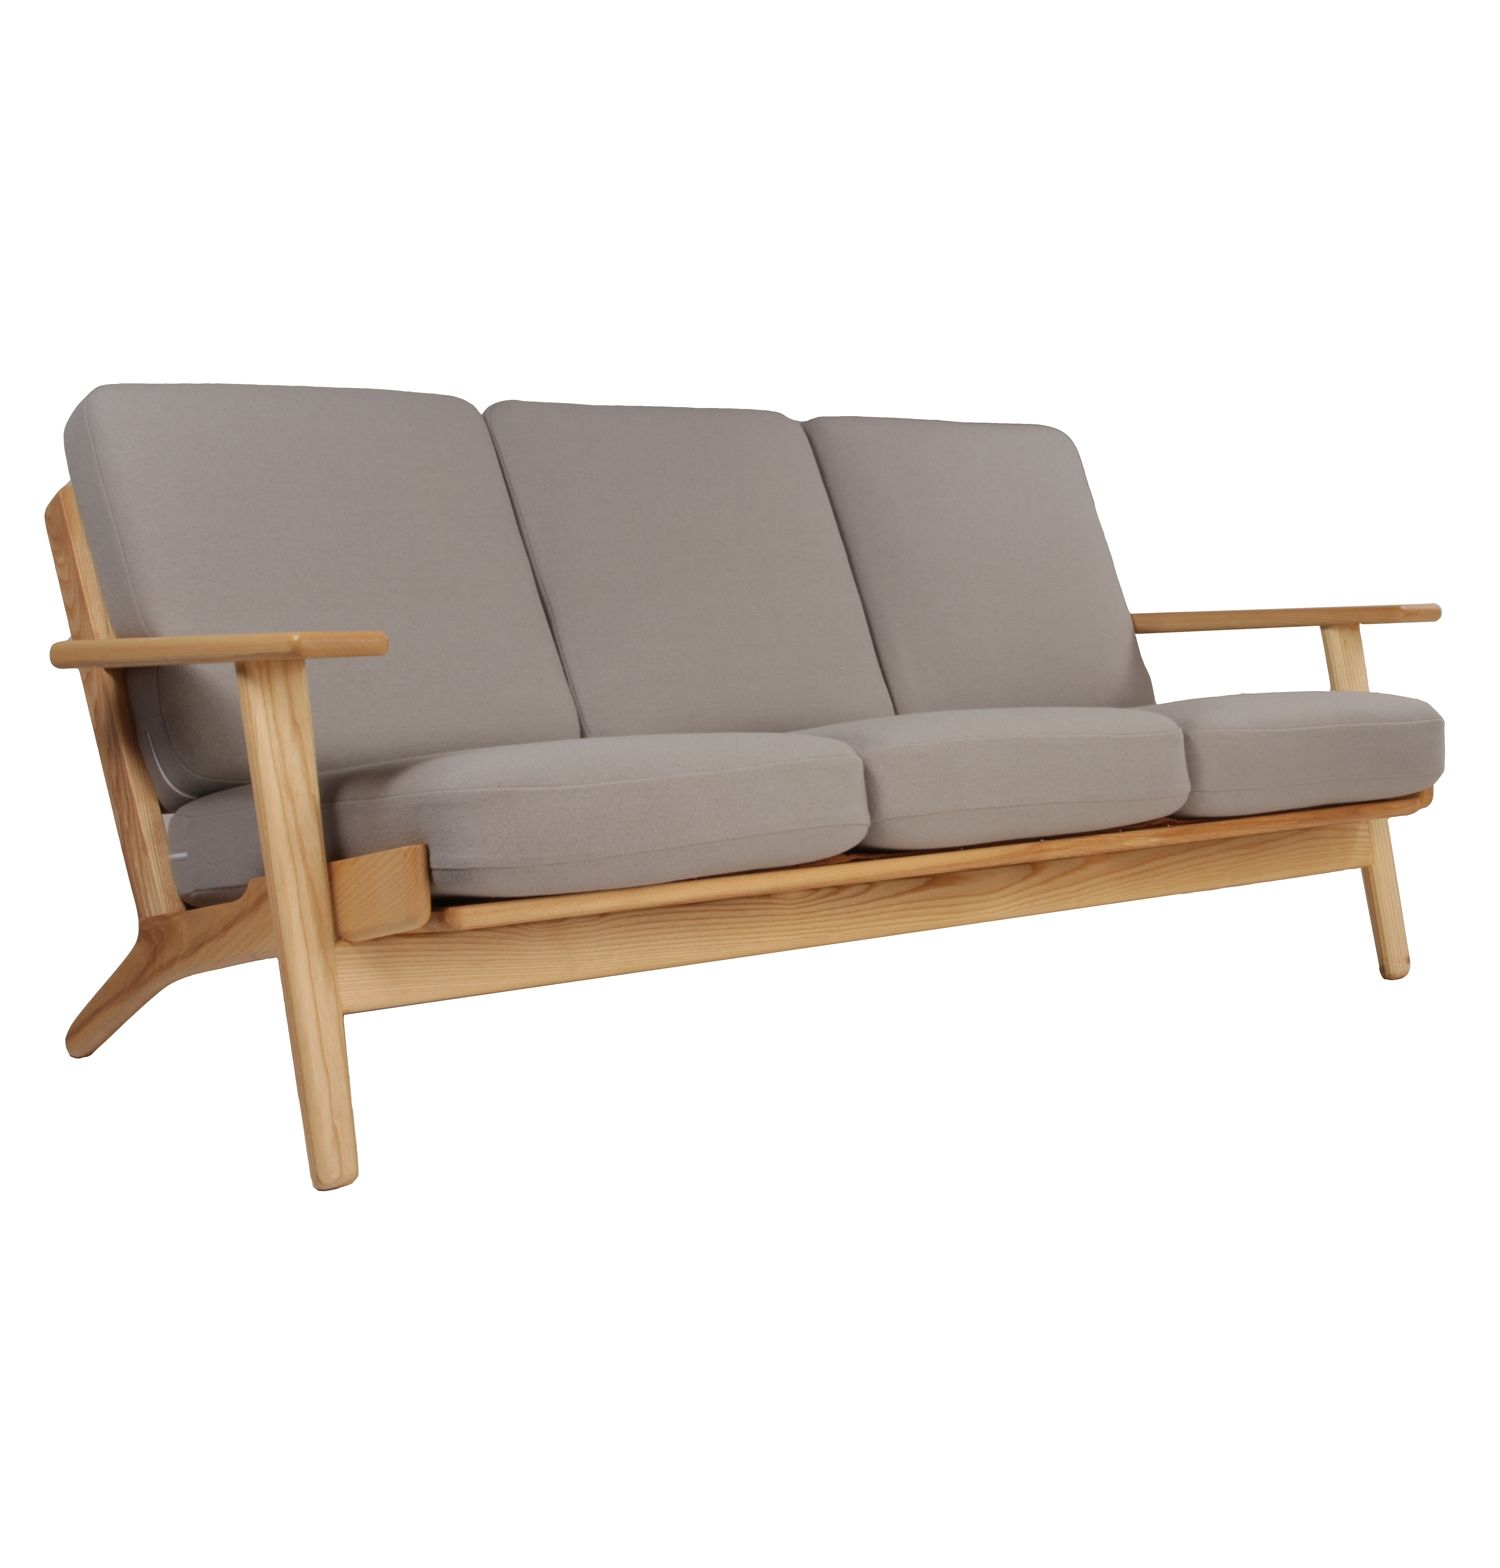 Hans Wegner Sofa Replica The Matt Blatt Replica Hans Wegner Plank 3 Seater Sofa Ash